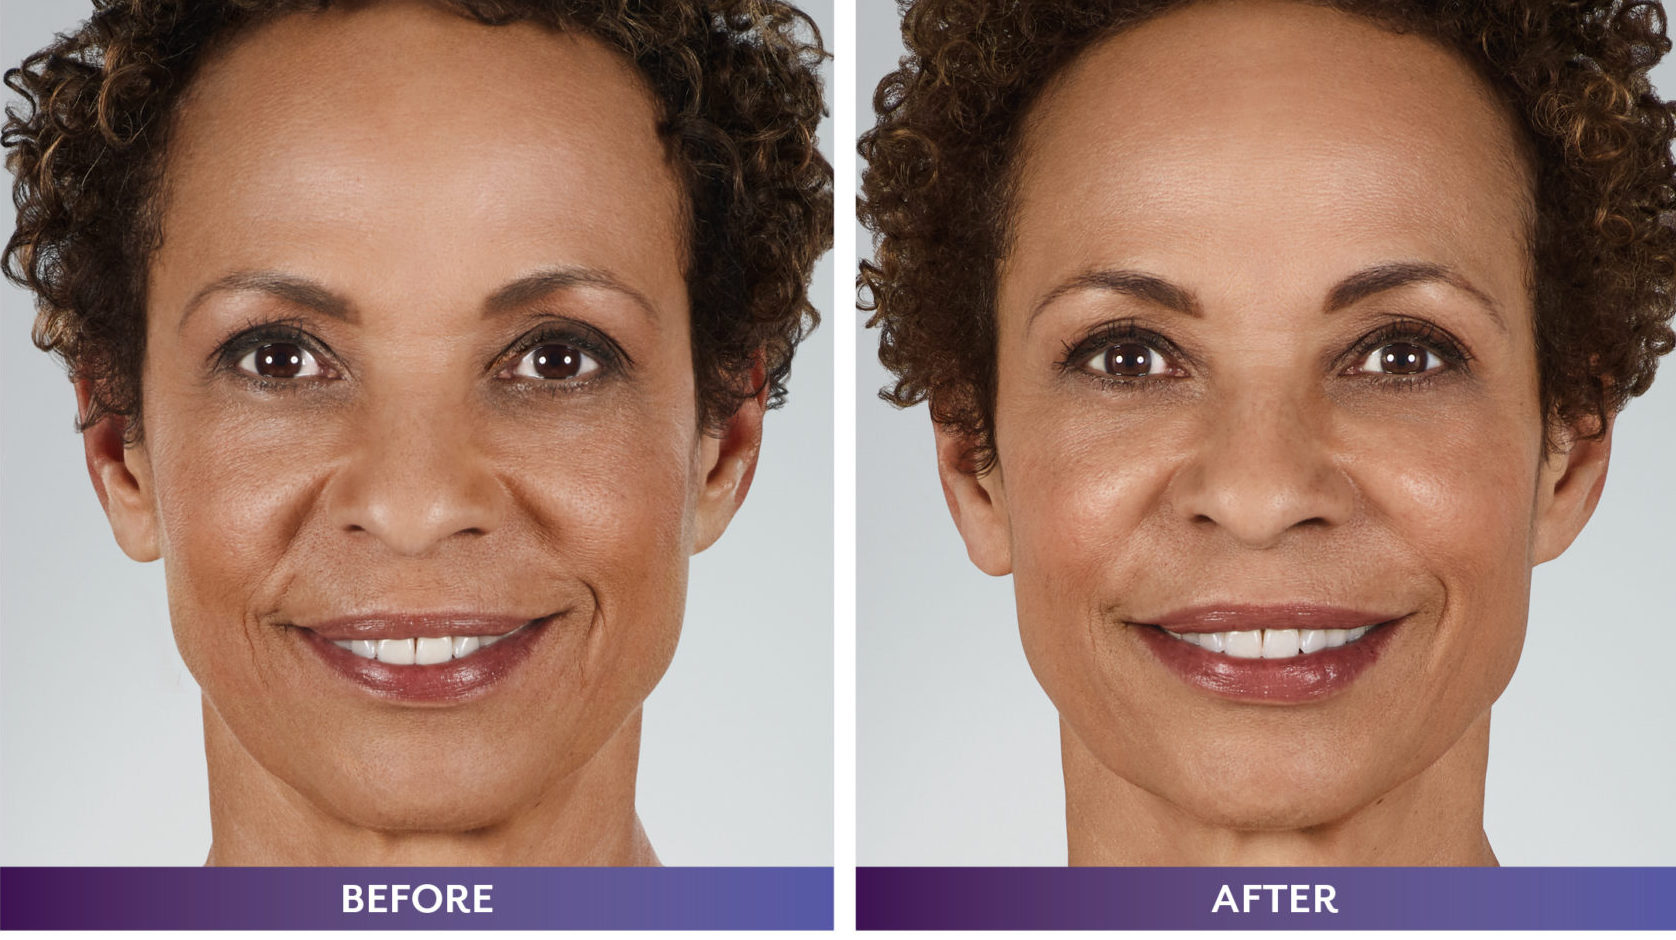 006332_MICHELE_WHAT-MOVES-YOU_Downloadable-BnA4-scaled-e1593128625147 JUVEDERM